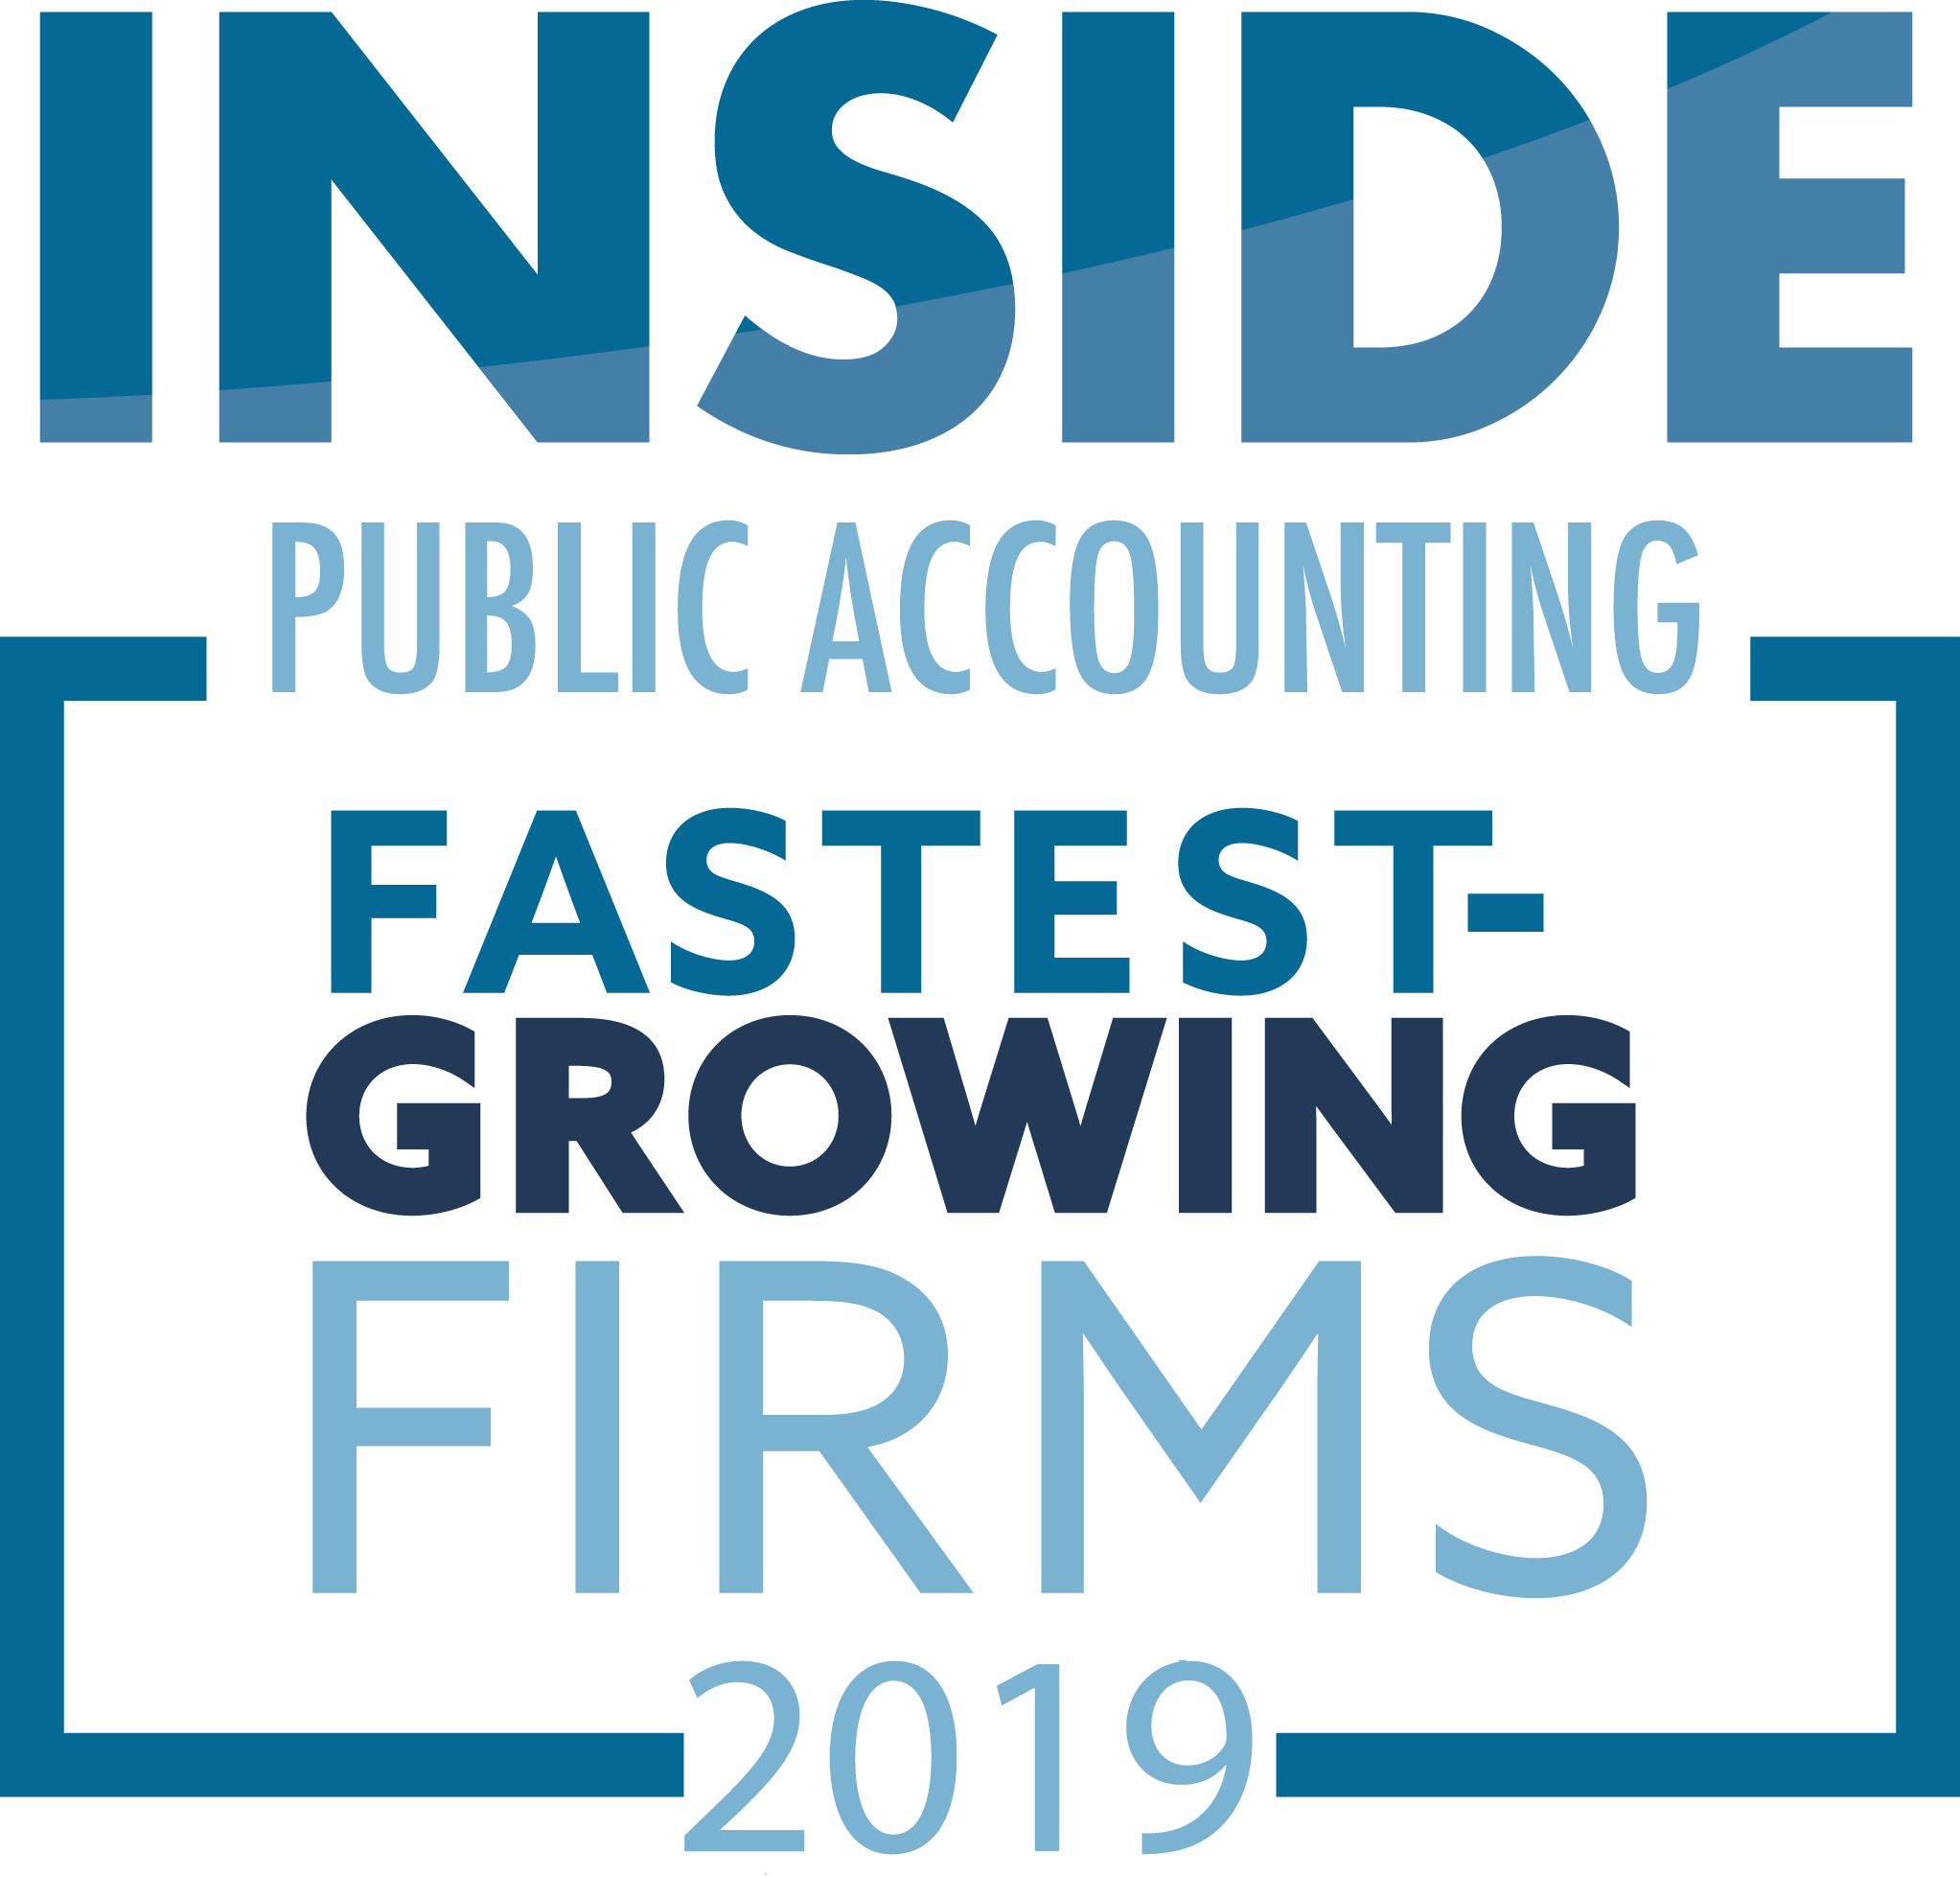 Inside Public Accounting Award- 2019 Fastest Growing Firms - 2019 was the 5th year in a row Richey May was recognized for growth.